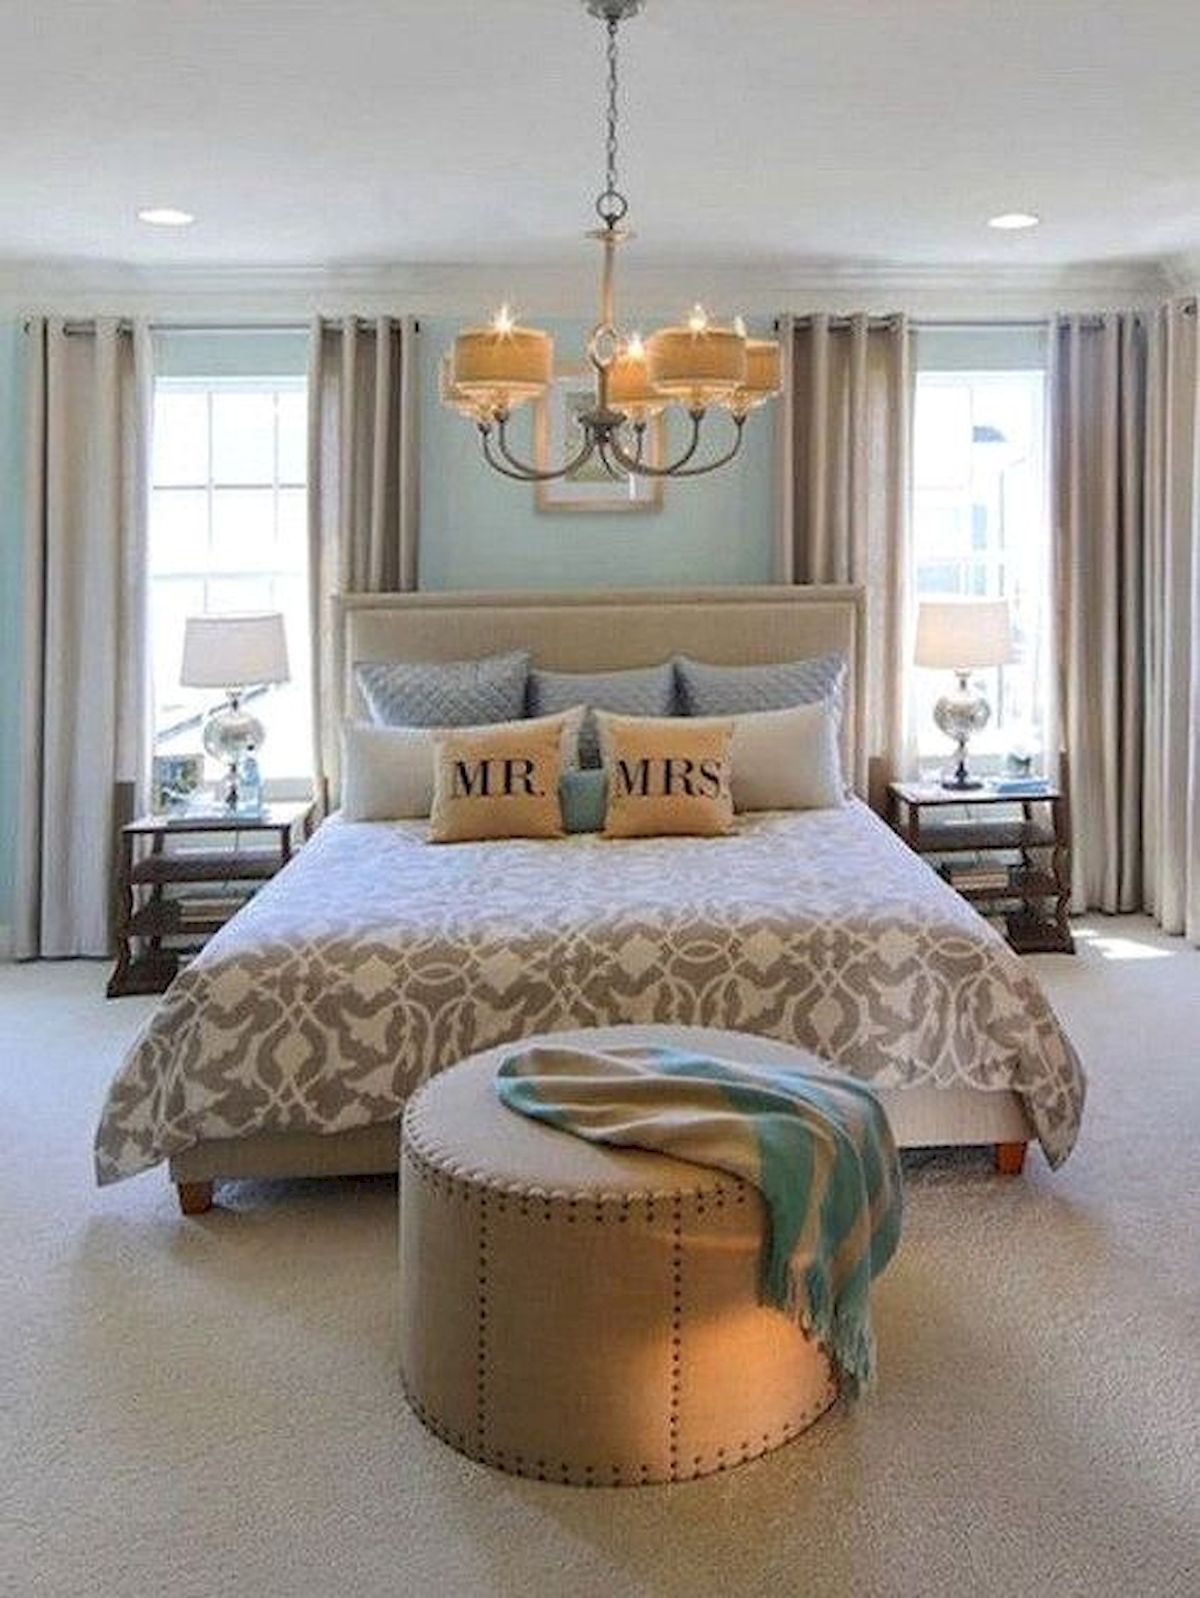 82 Cool Bedroom Ideas For Creative Couples 30 Artmyideas